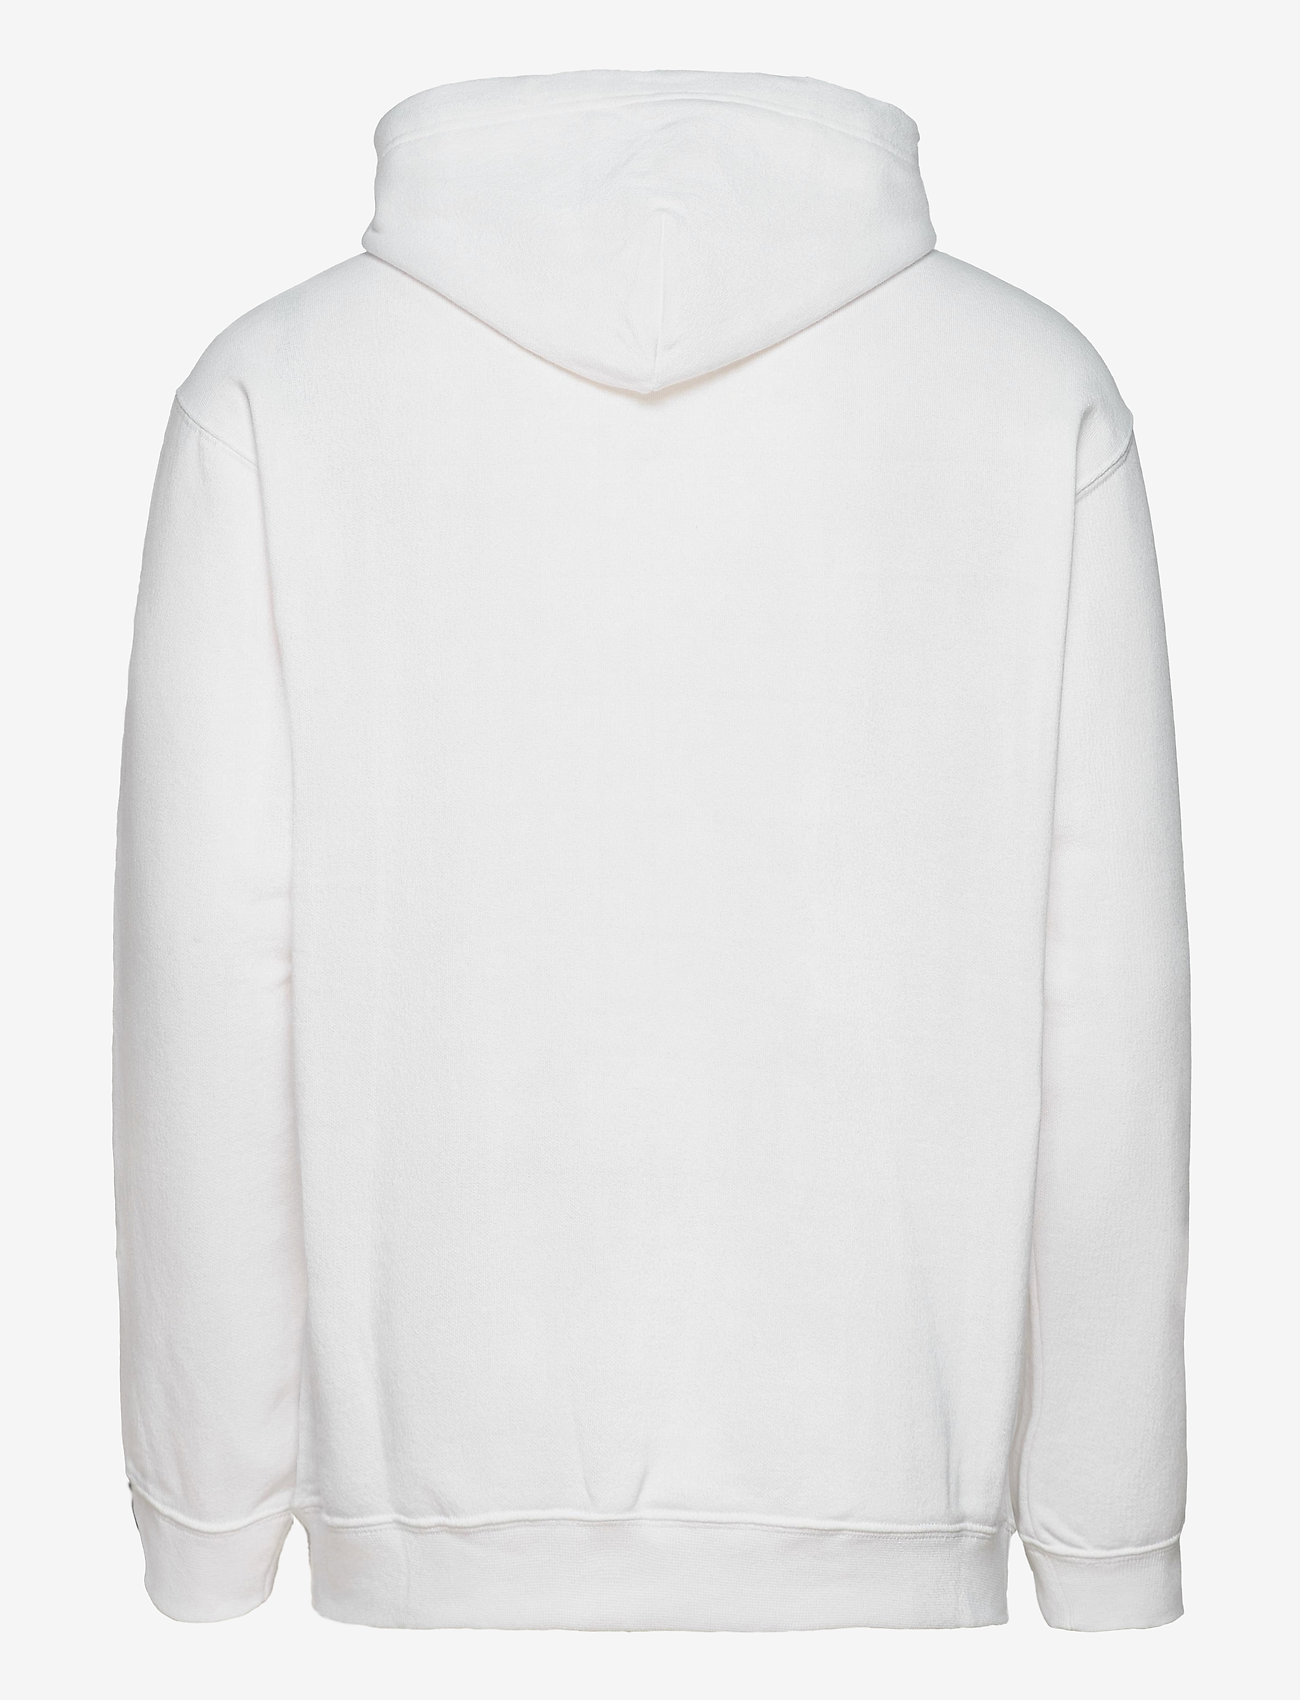 Champion Hooded Sweatshirt - Sweatshirts WHITE - Menn Klær